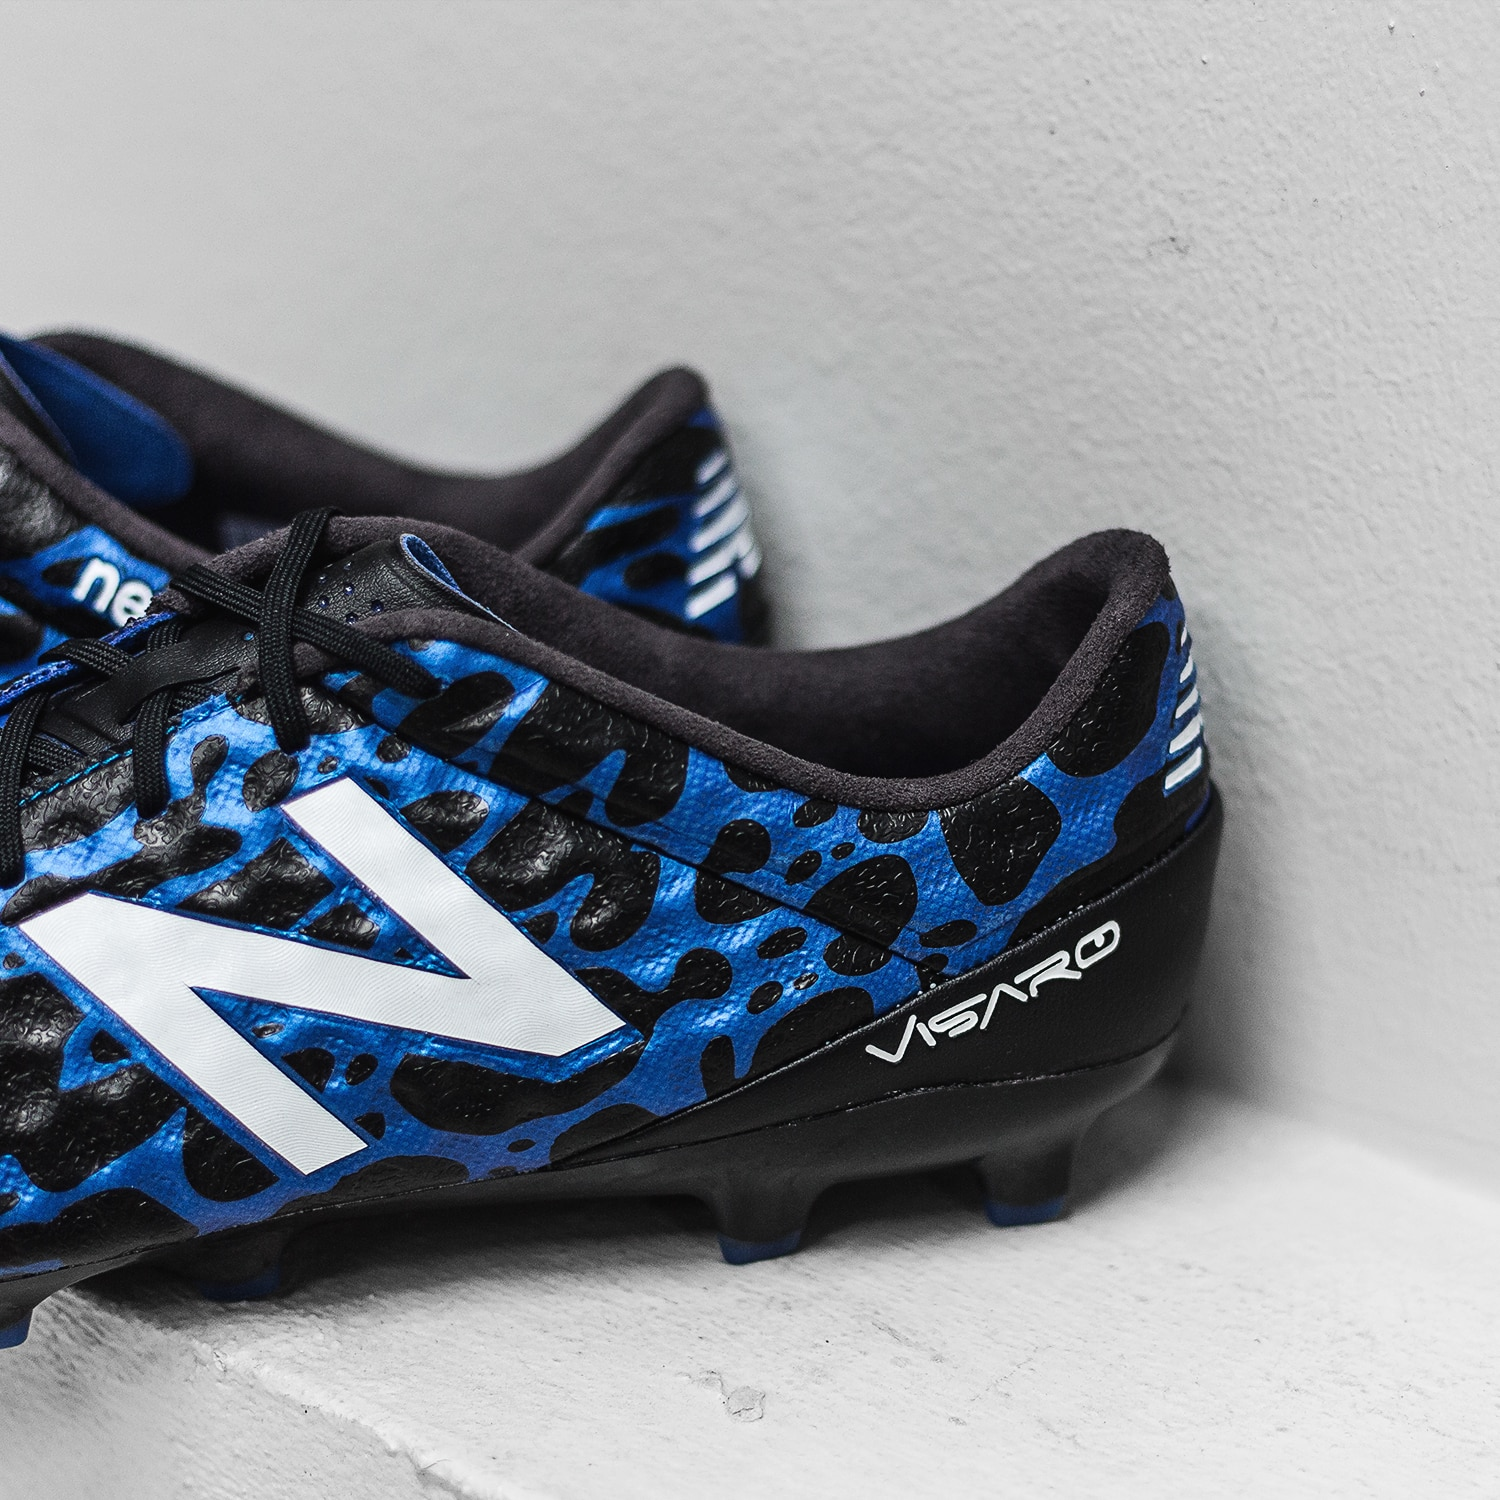 chaussures-football-newbalance-visaro-signal-edition-img5